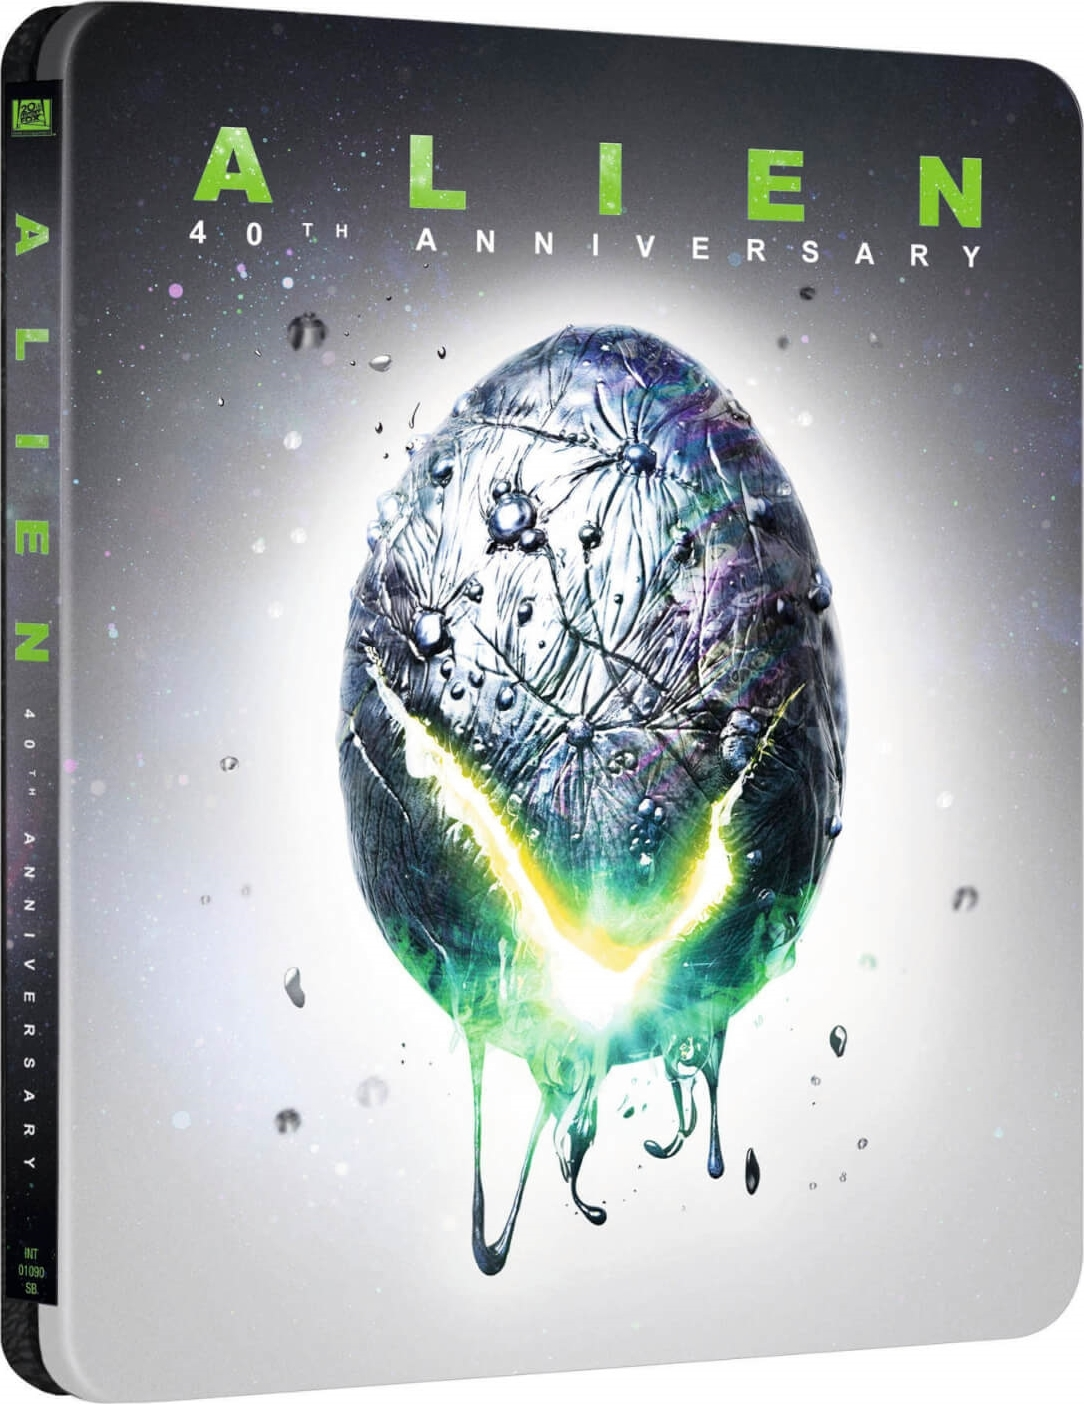 Alien (40th Anniversary Edition)(SteelBook)(4K Ultra HD Blu-ray)(Pre-order / Apr 23)